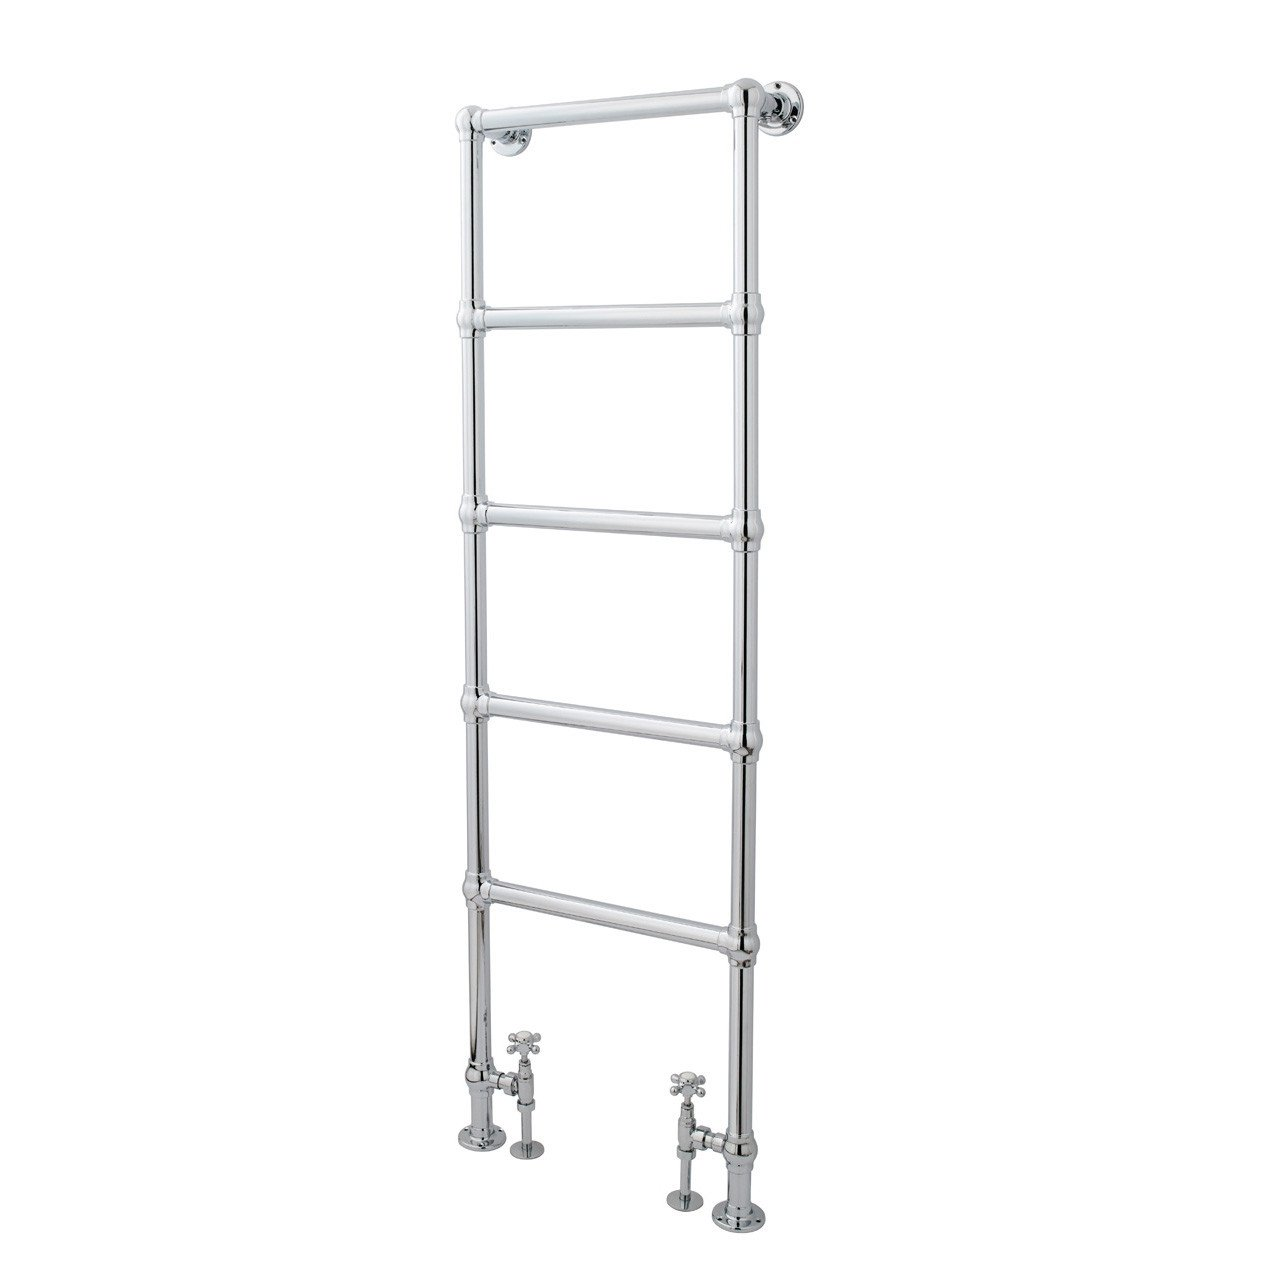 Hudson Reed Countess Floor Standing Towel Rail 1550mm x 600mm x 130mm - HL355